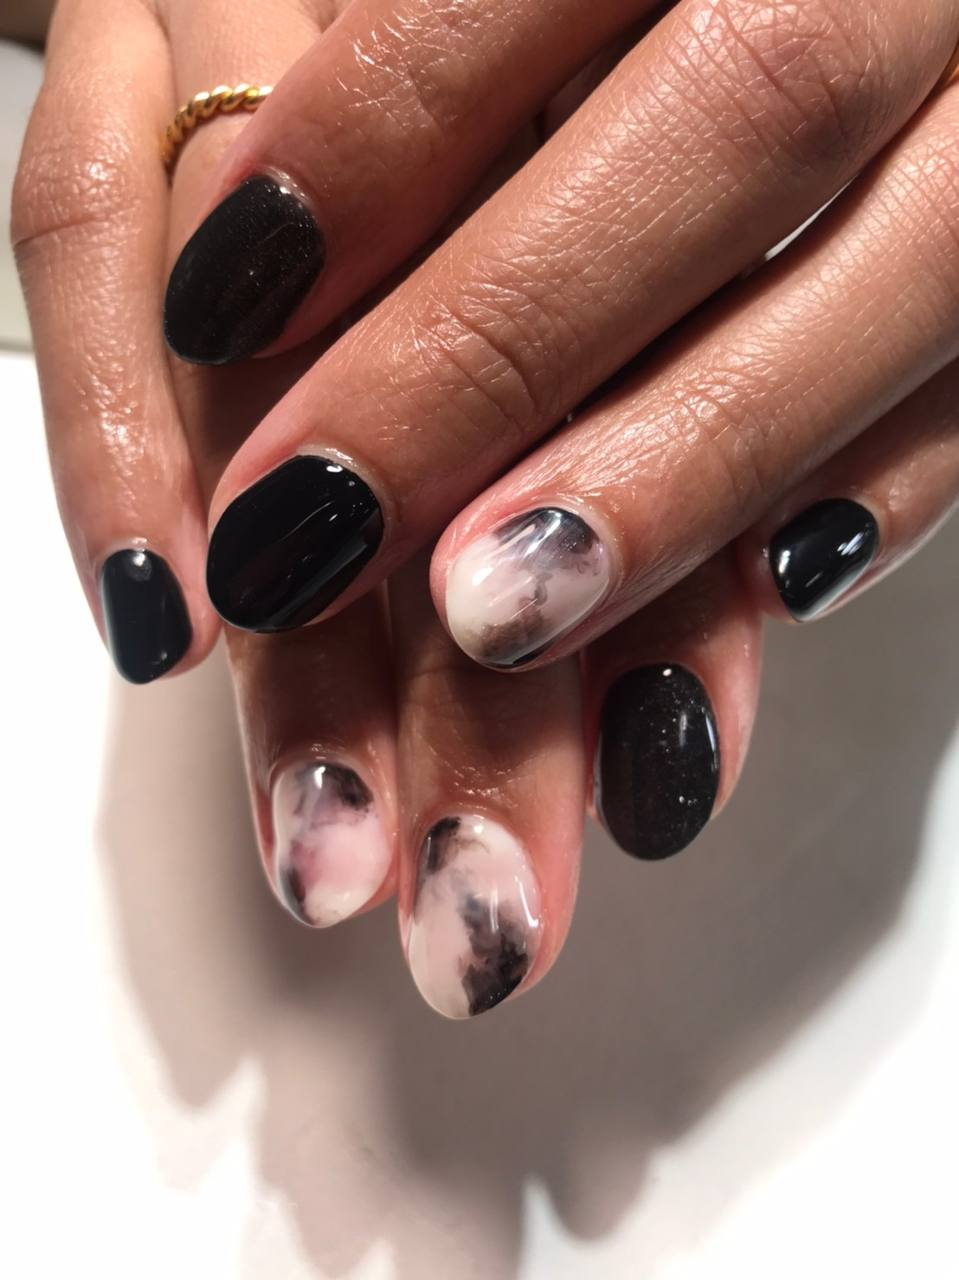 Nail Extensions or Fill In